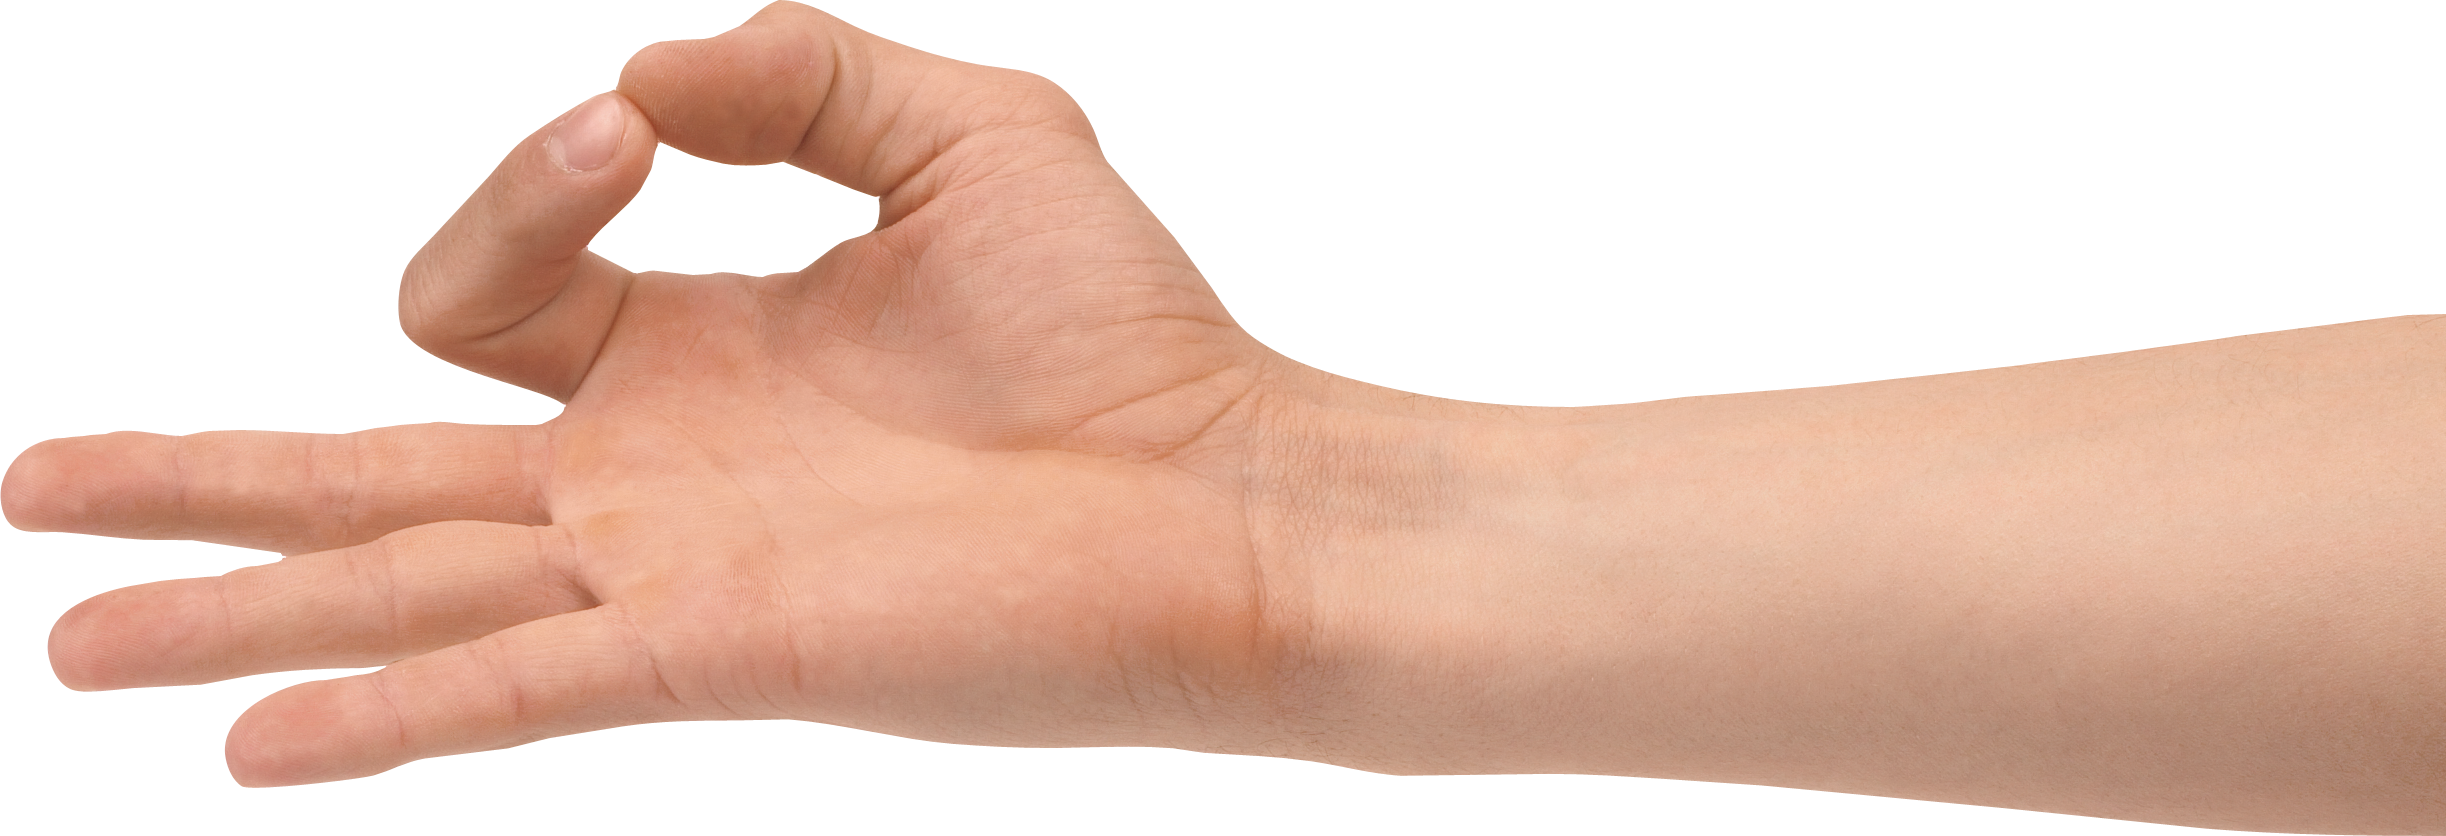 Arm png. Hands free images pictures